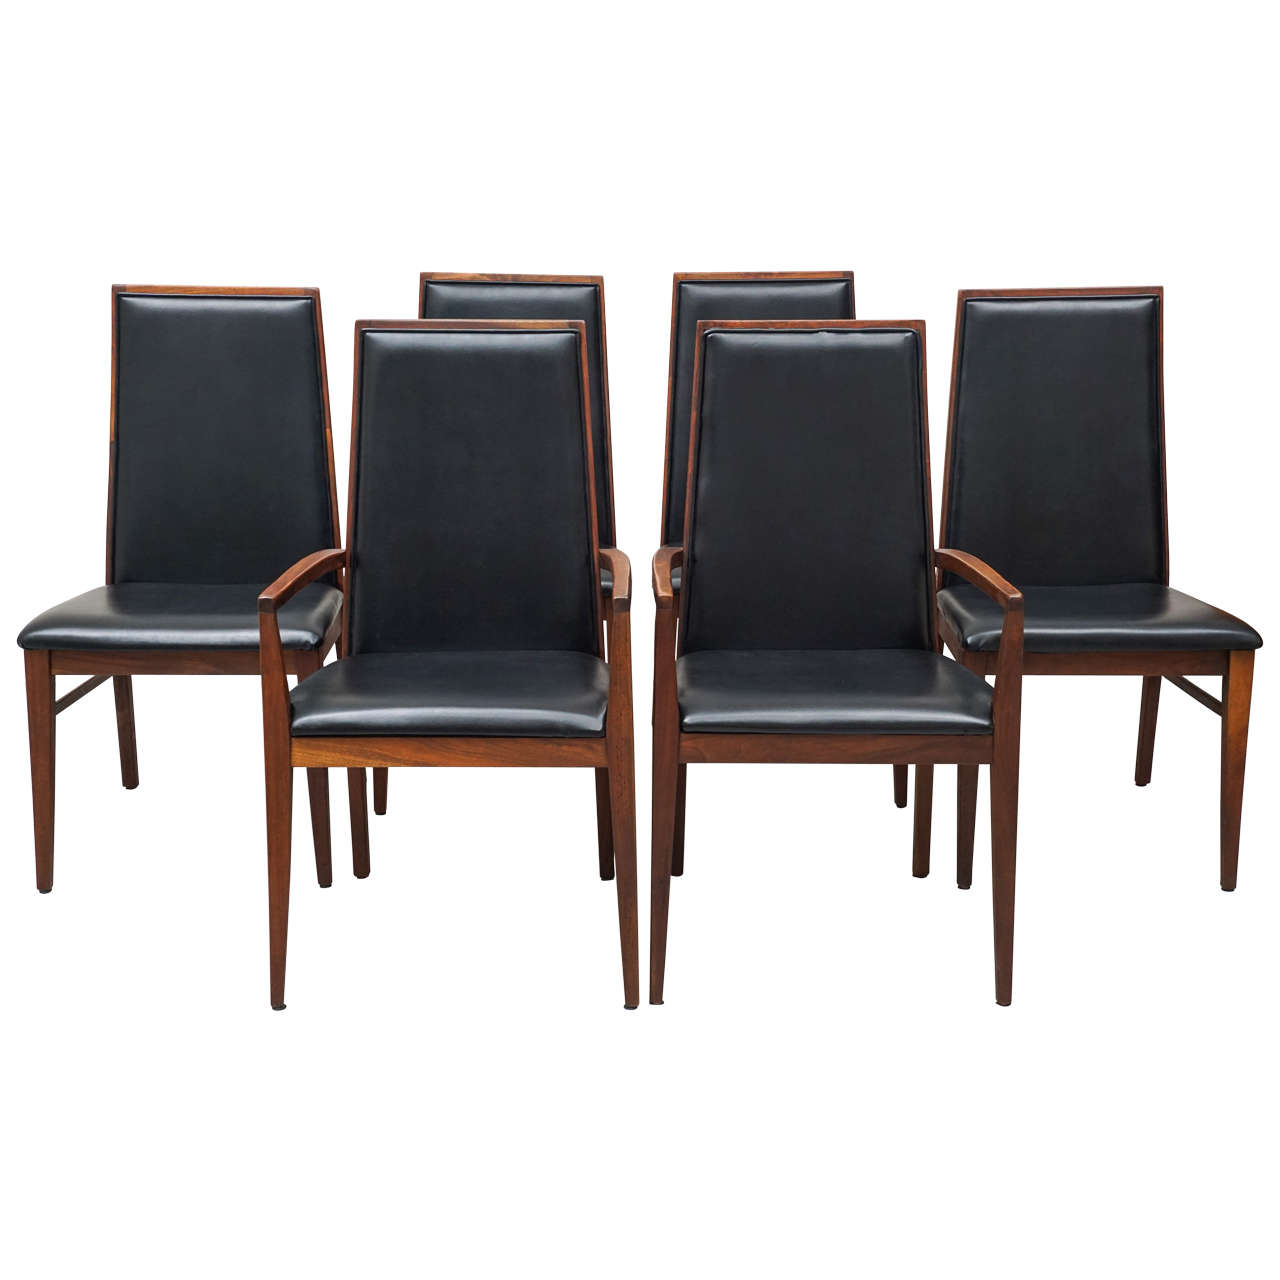 Six milo baughman chairs for dillingham at 1stdibs for 4 x dining room chairs